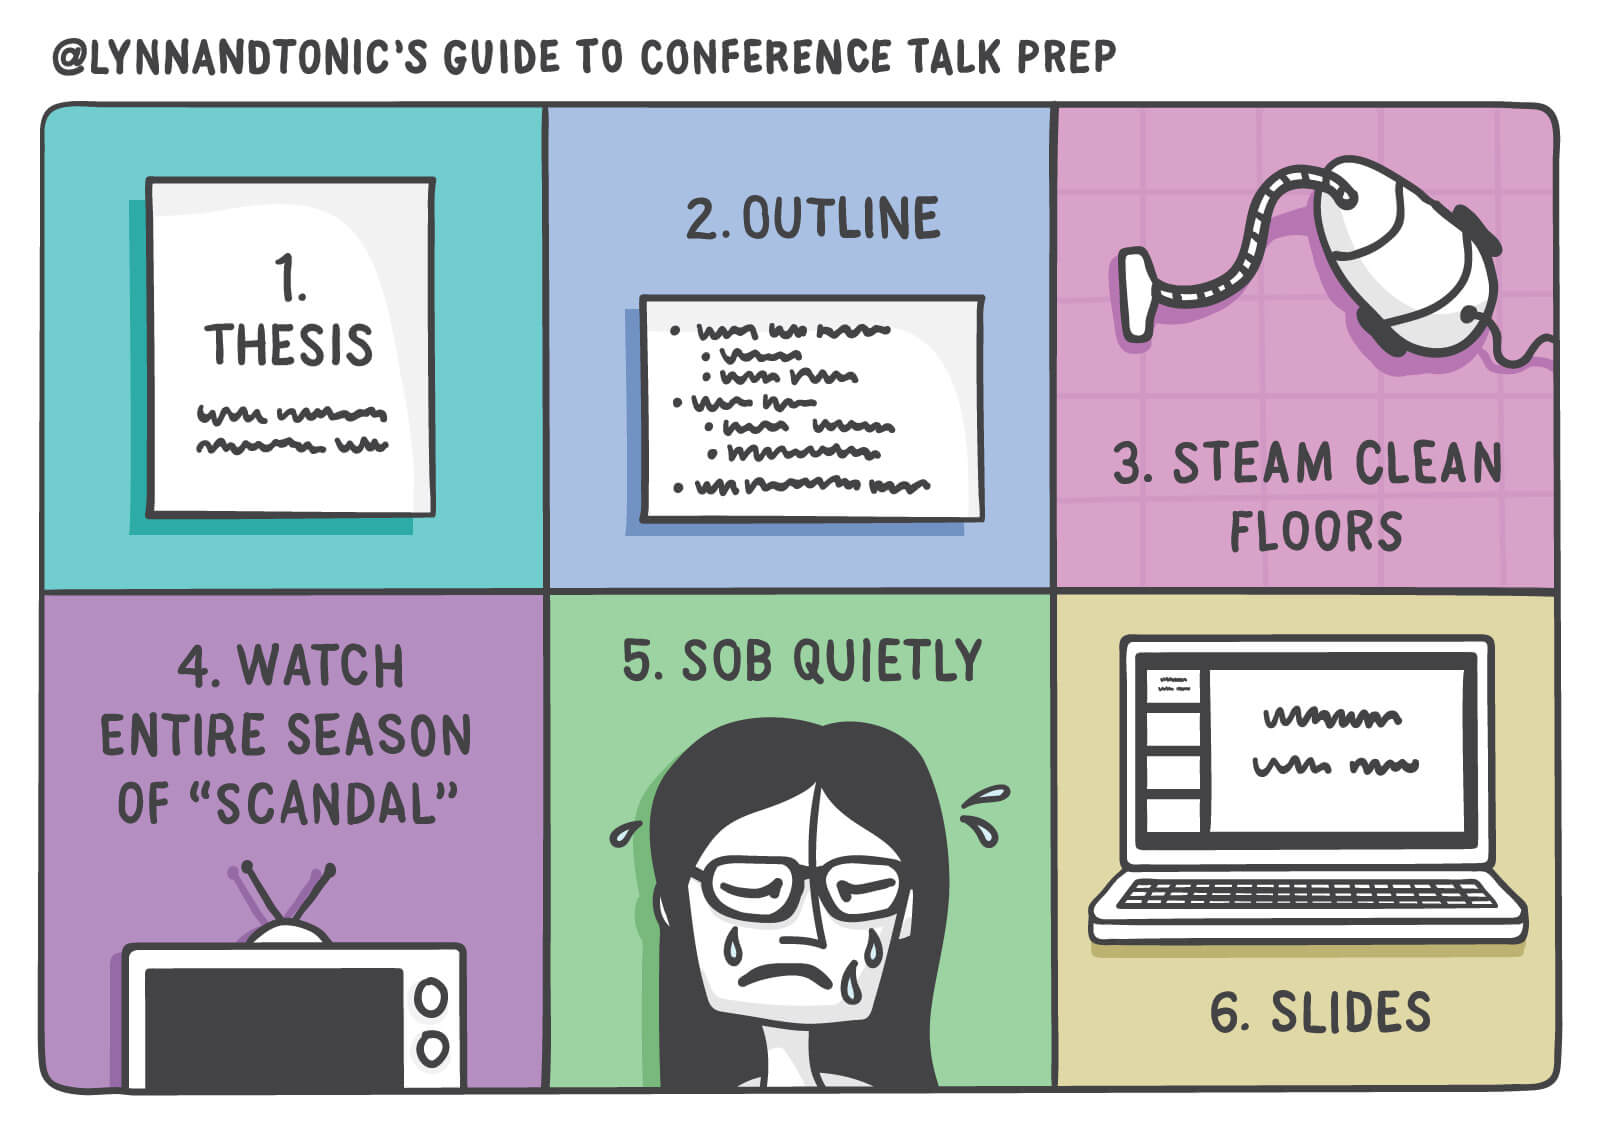 @lynnandtonic's Guide to Conference Talk Prep: 1. Thesis 2. Outline 3. Steam clean foors 4. Watch entire season of Scandal 5. Sob quietly 6. Slides